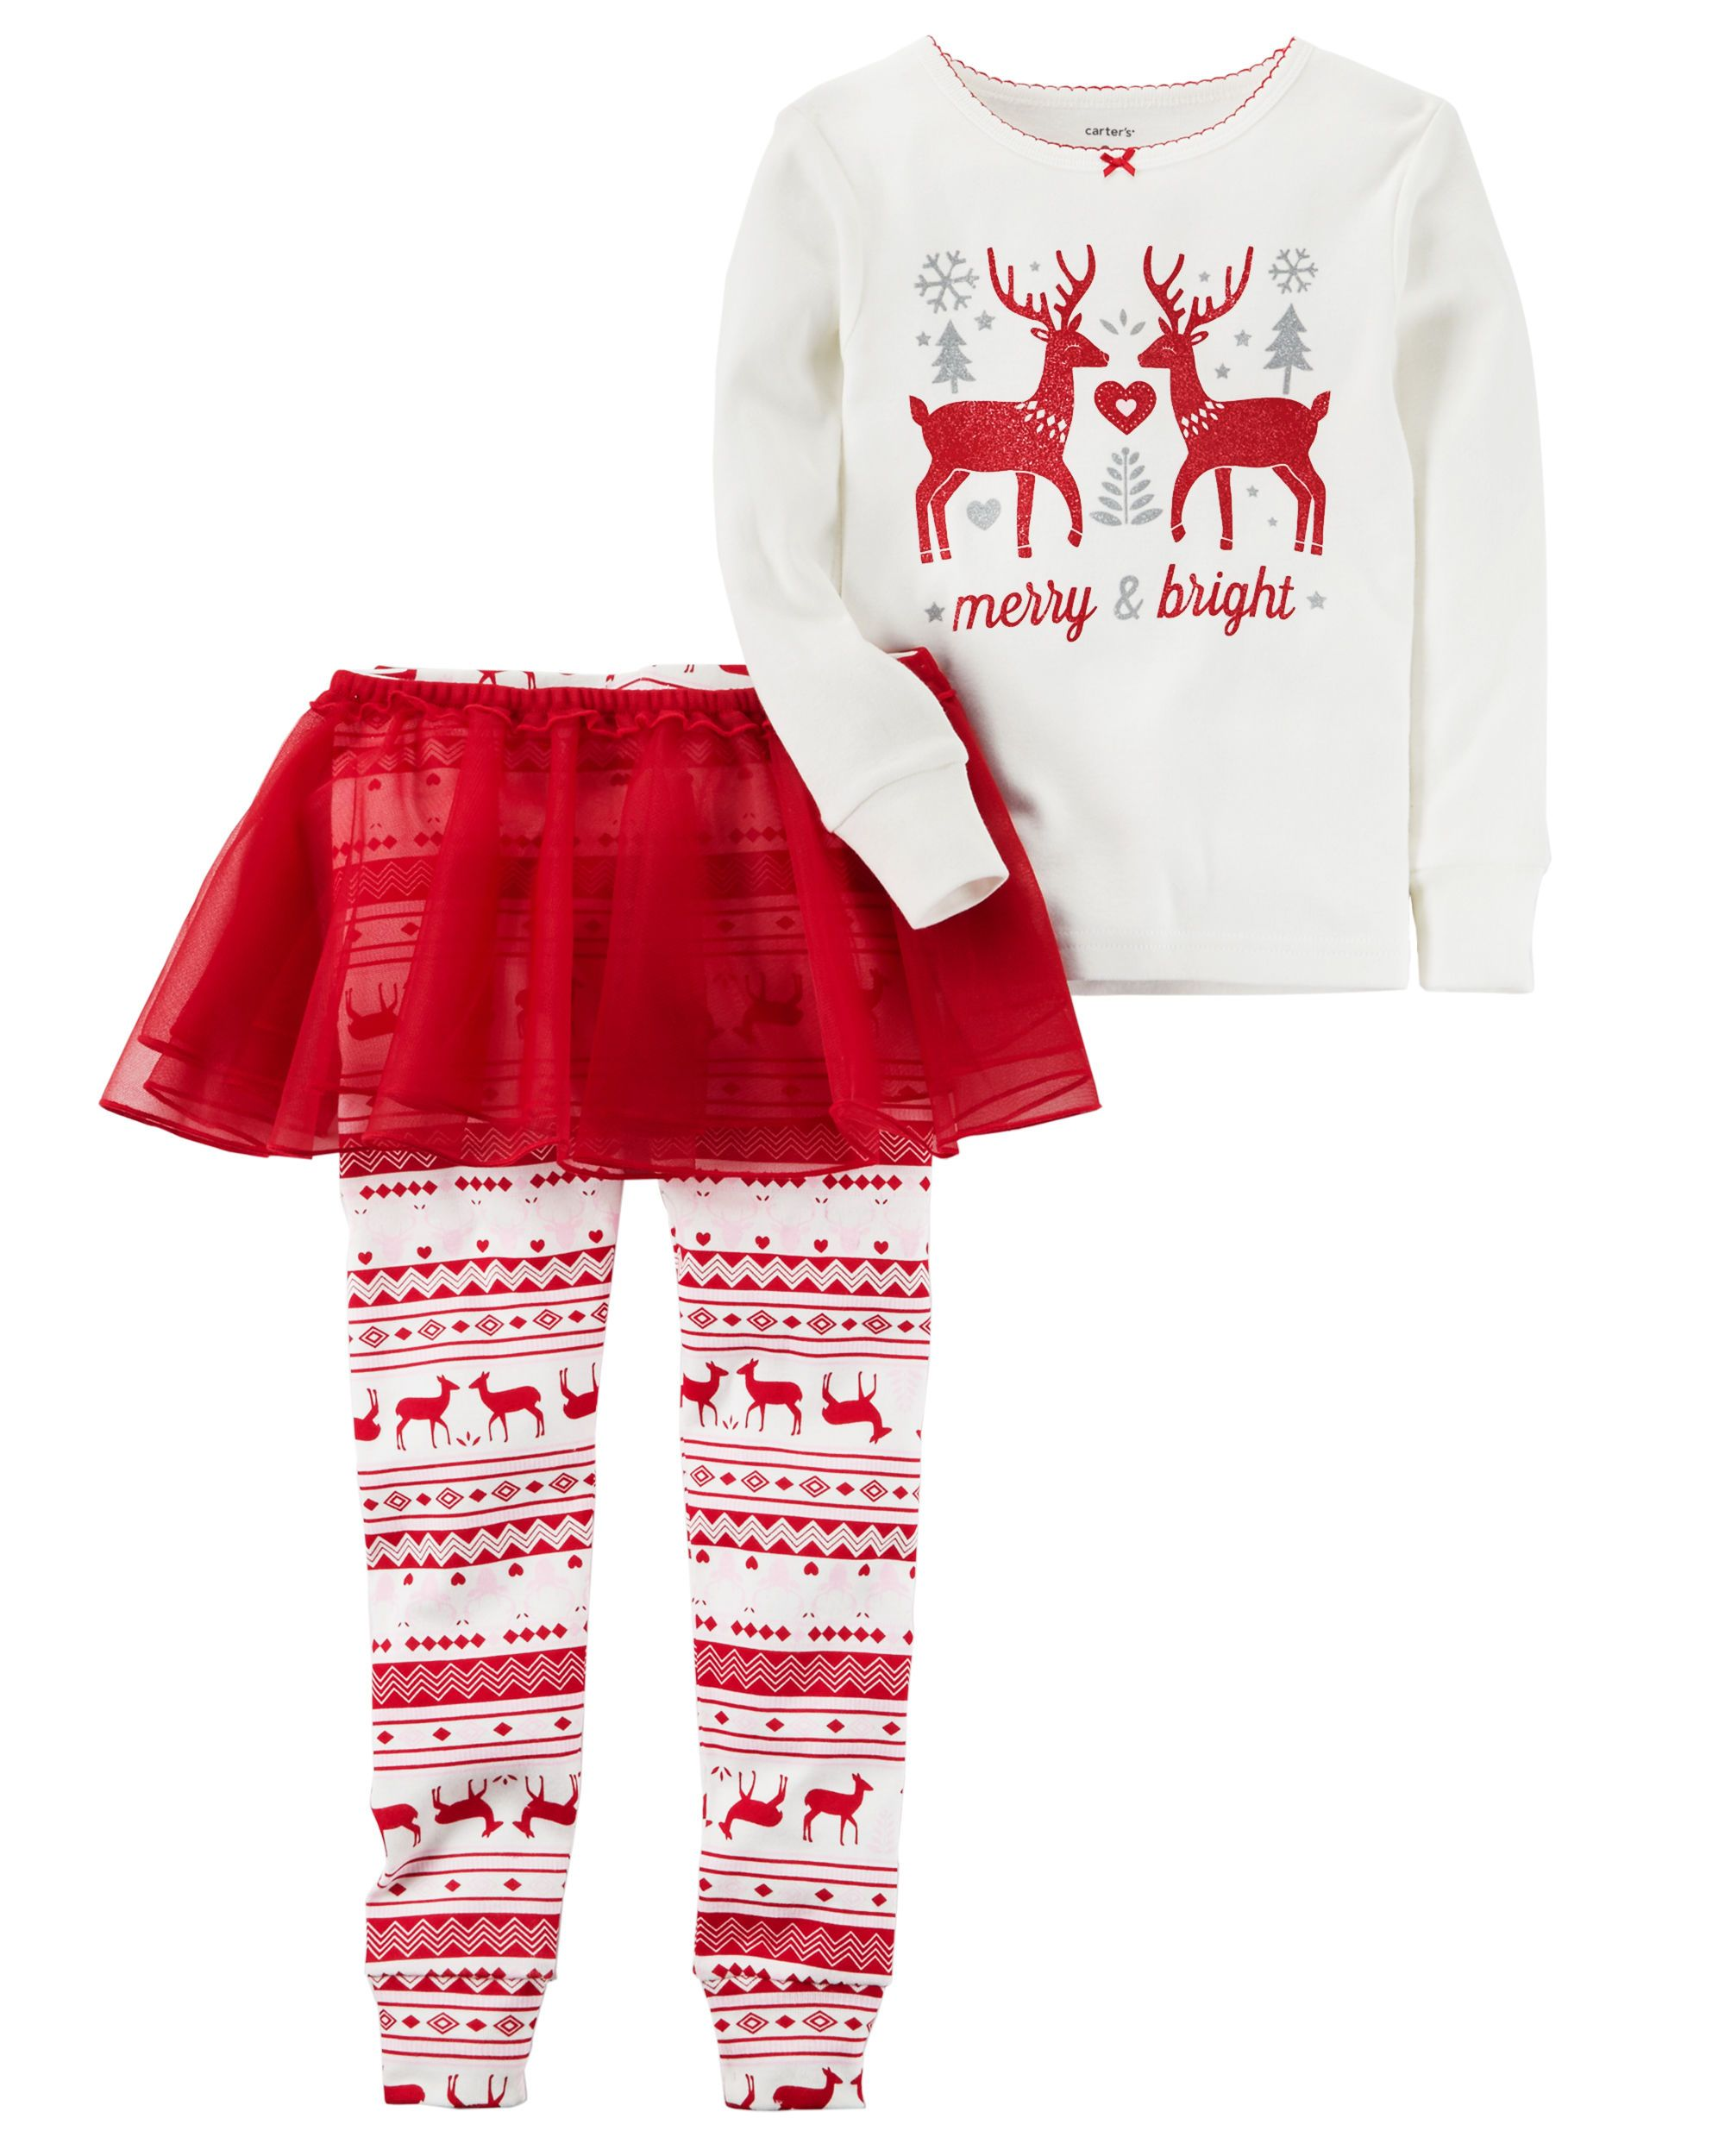 Pin by Jessica Wallace on Lil\' Doe | Pinterest | Pajamas, Girls ...